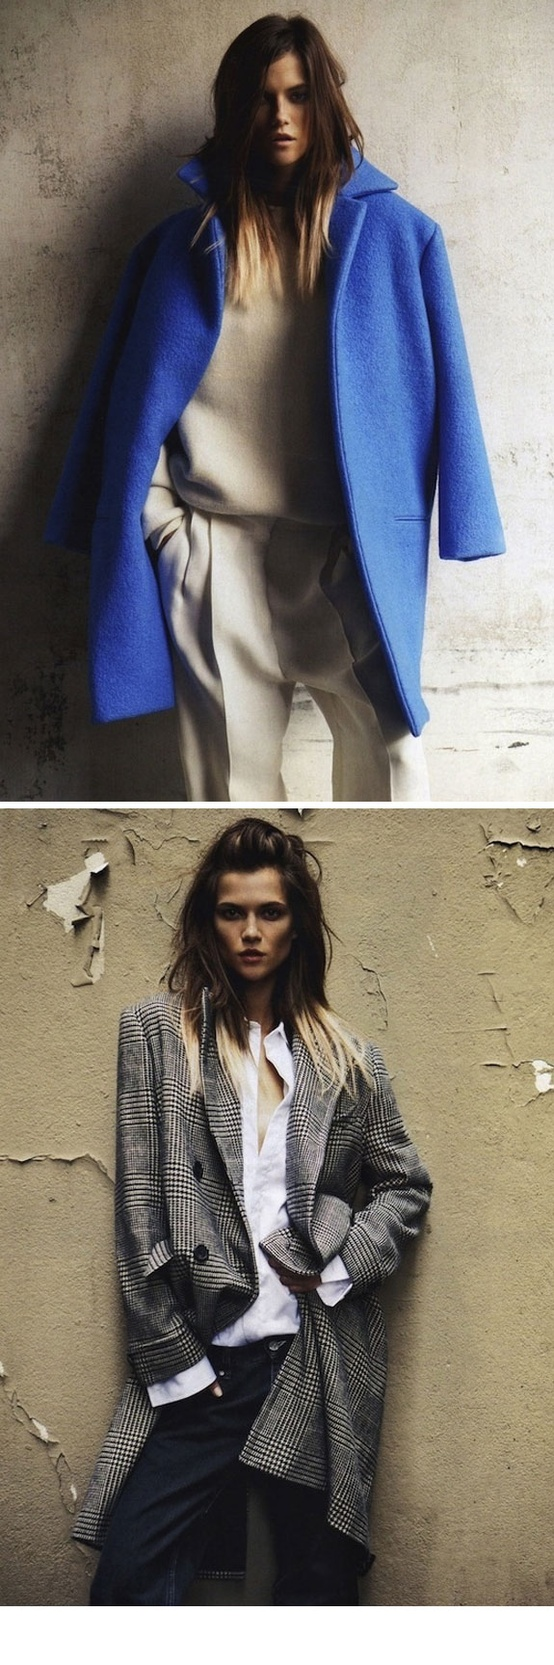 blue oversize coat Coat Styles For Winter 2013! What To Wear?